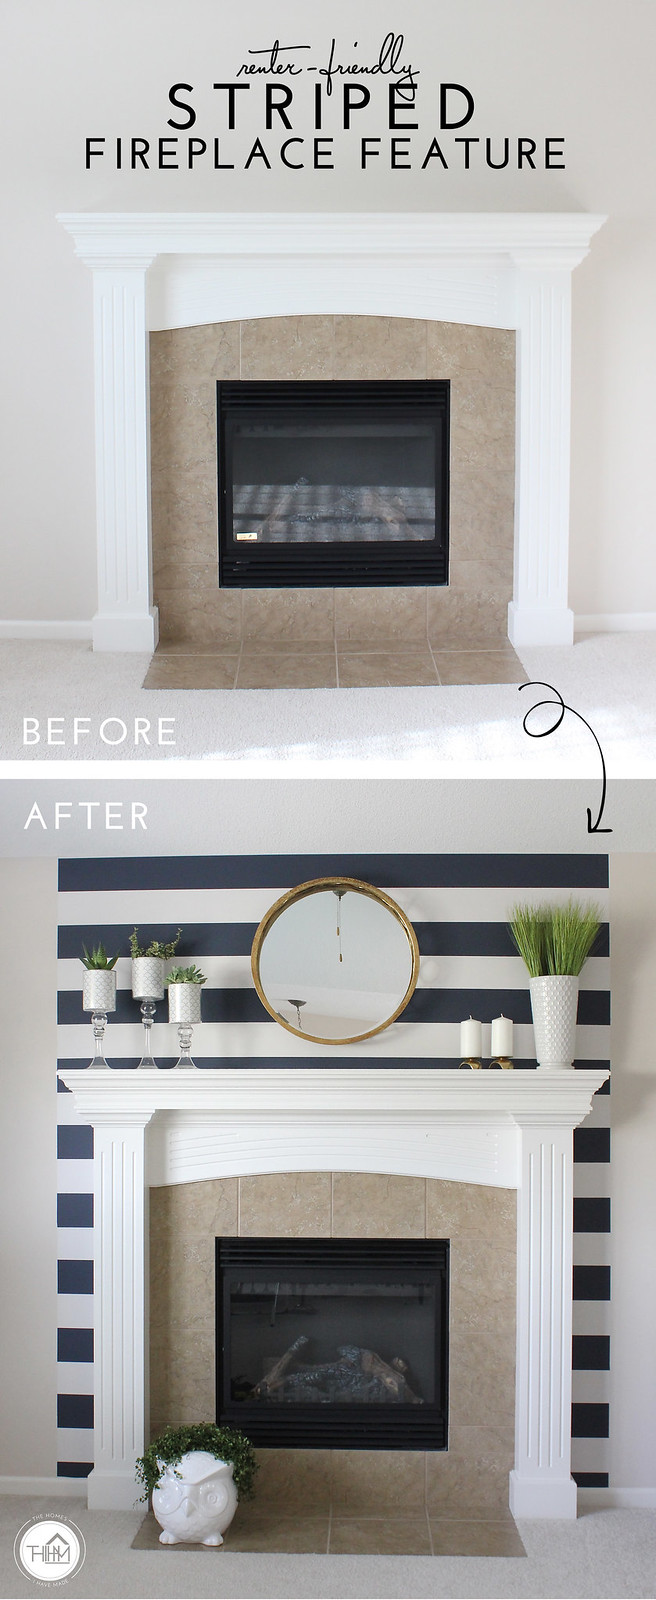 Renter Friendly Striped Fireplace Feature